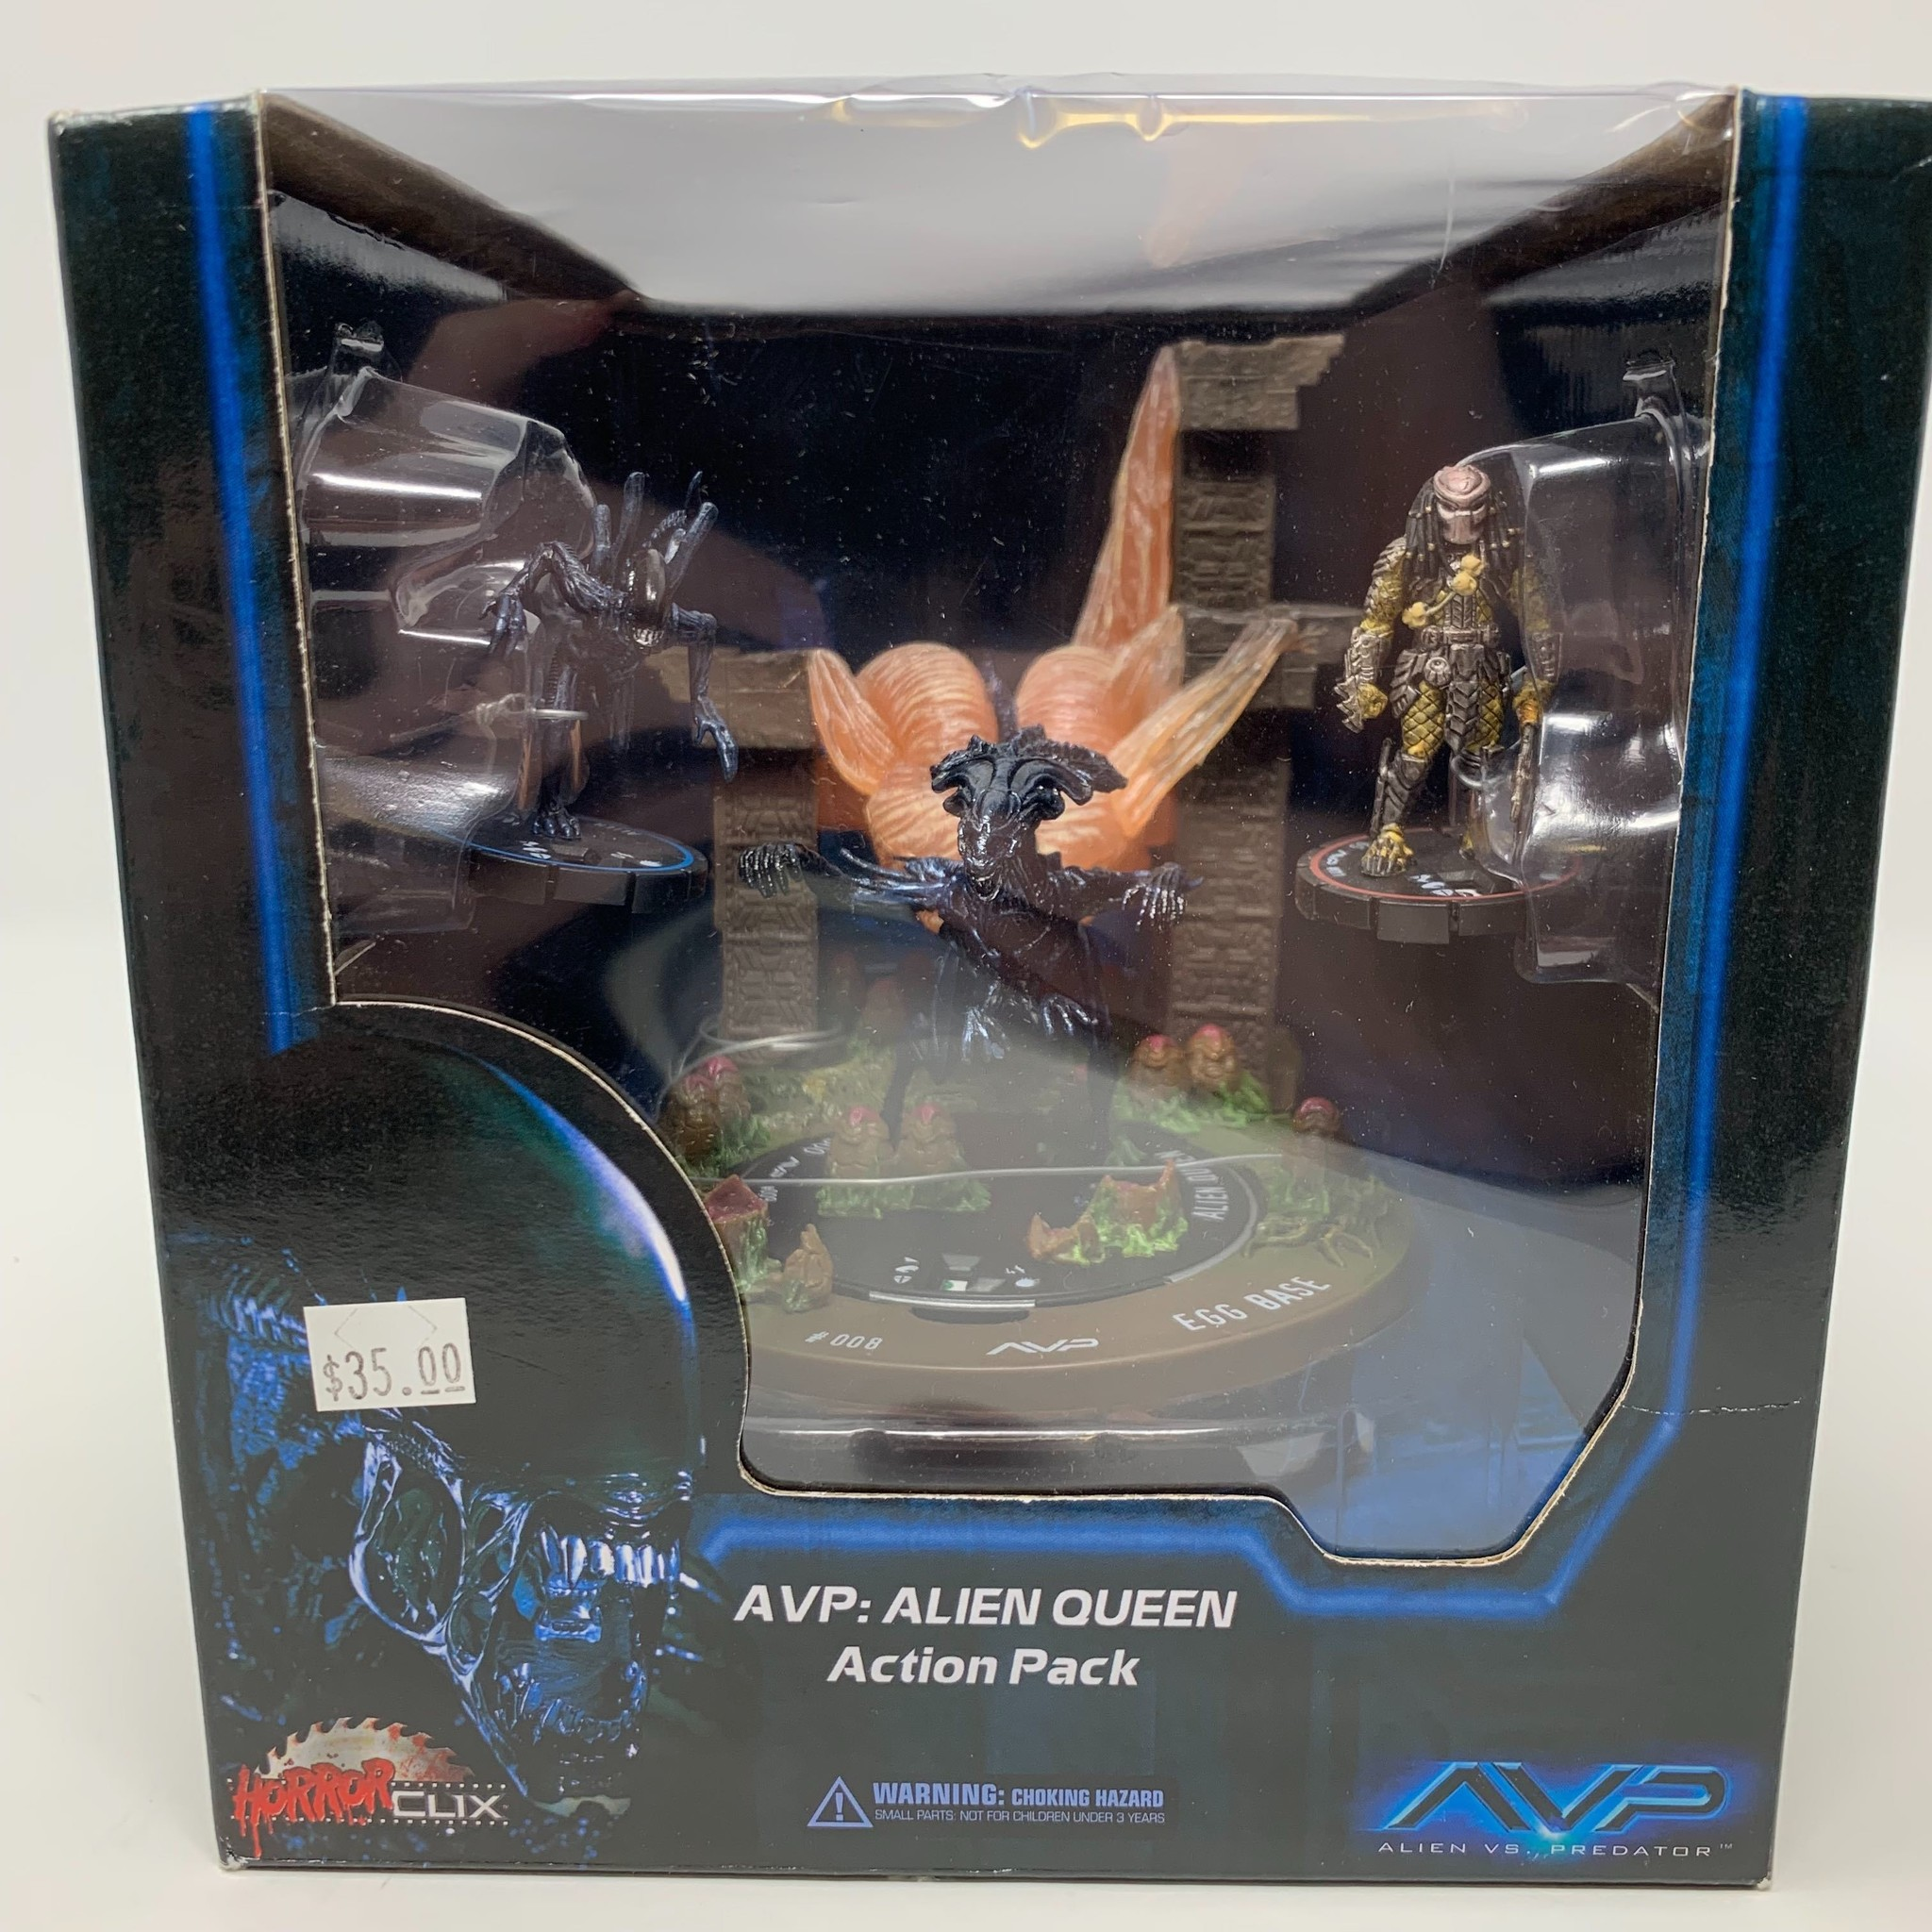 HorrorClix AVP Alien Queen